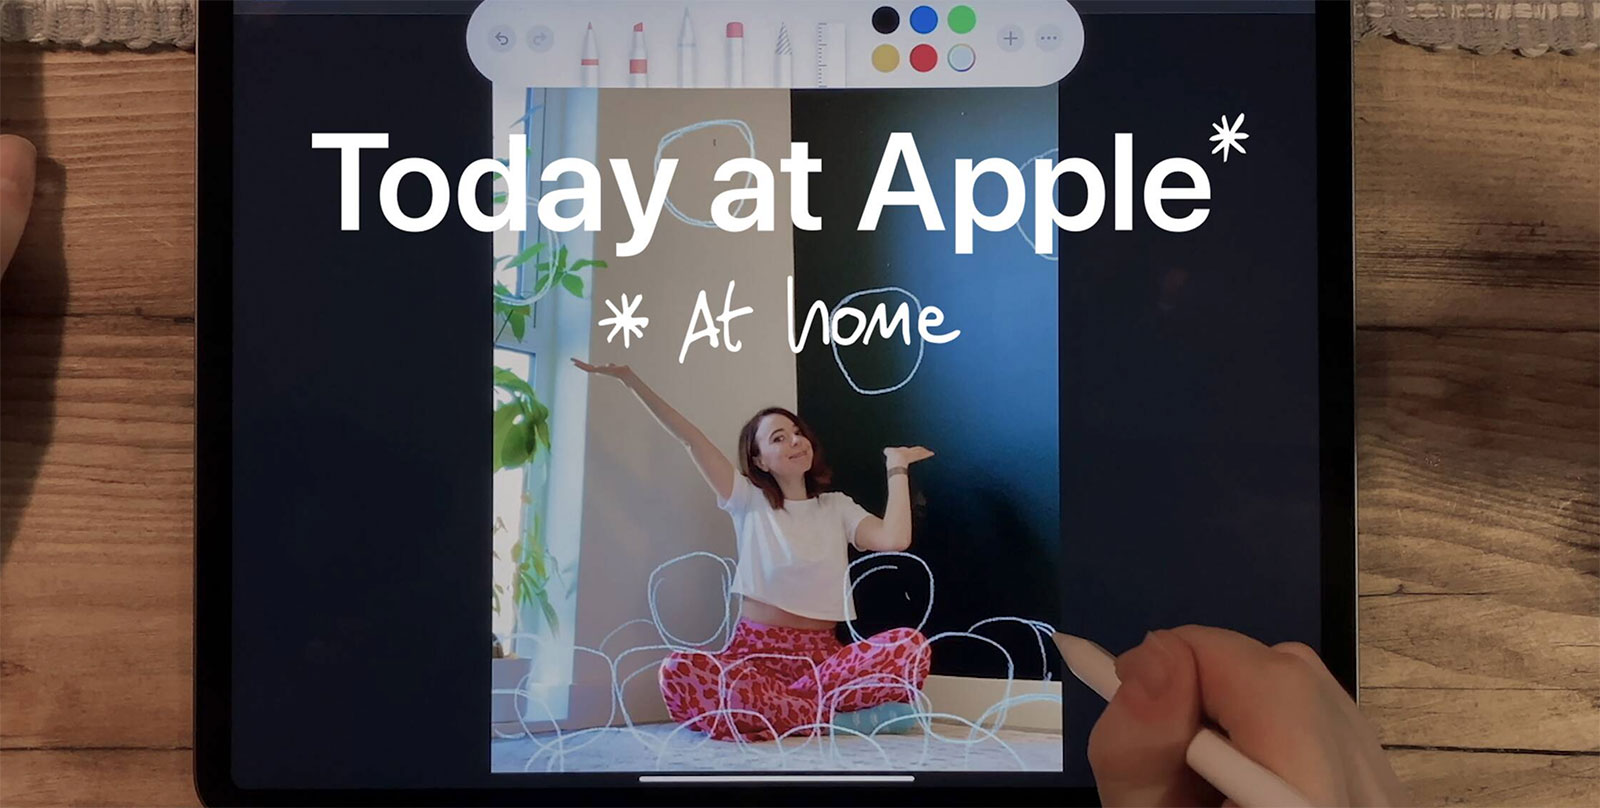 Today at Apple, at home